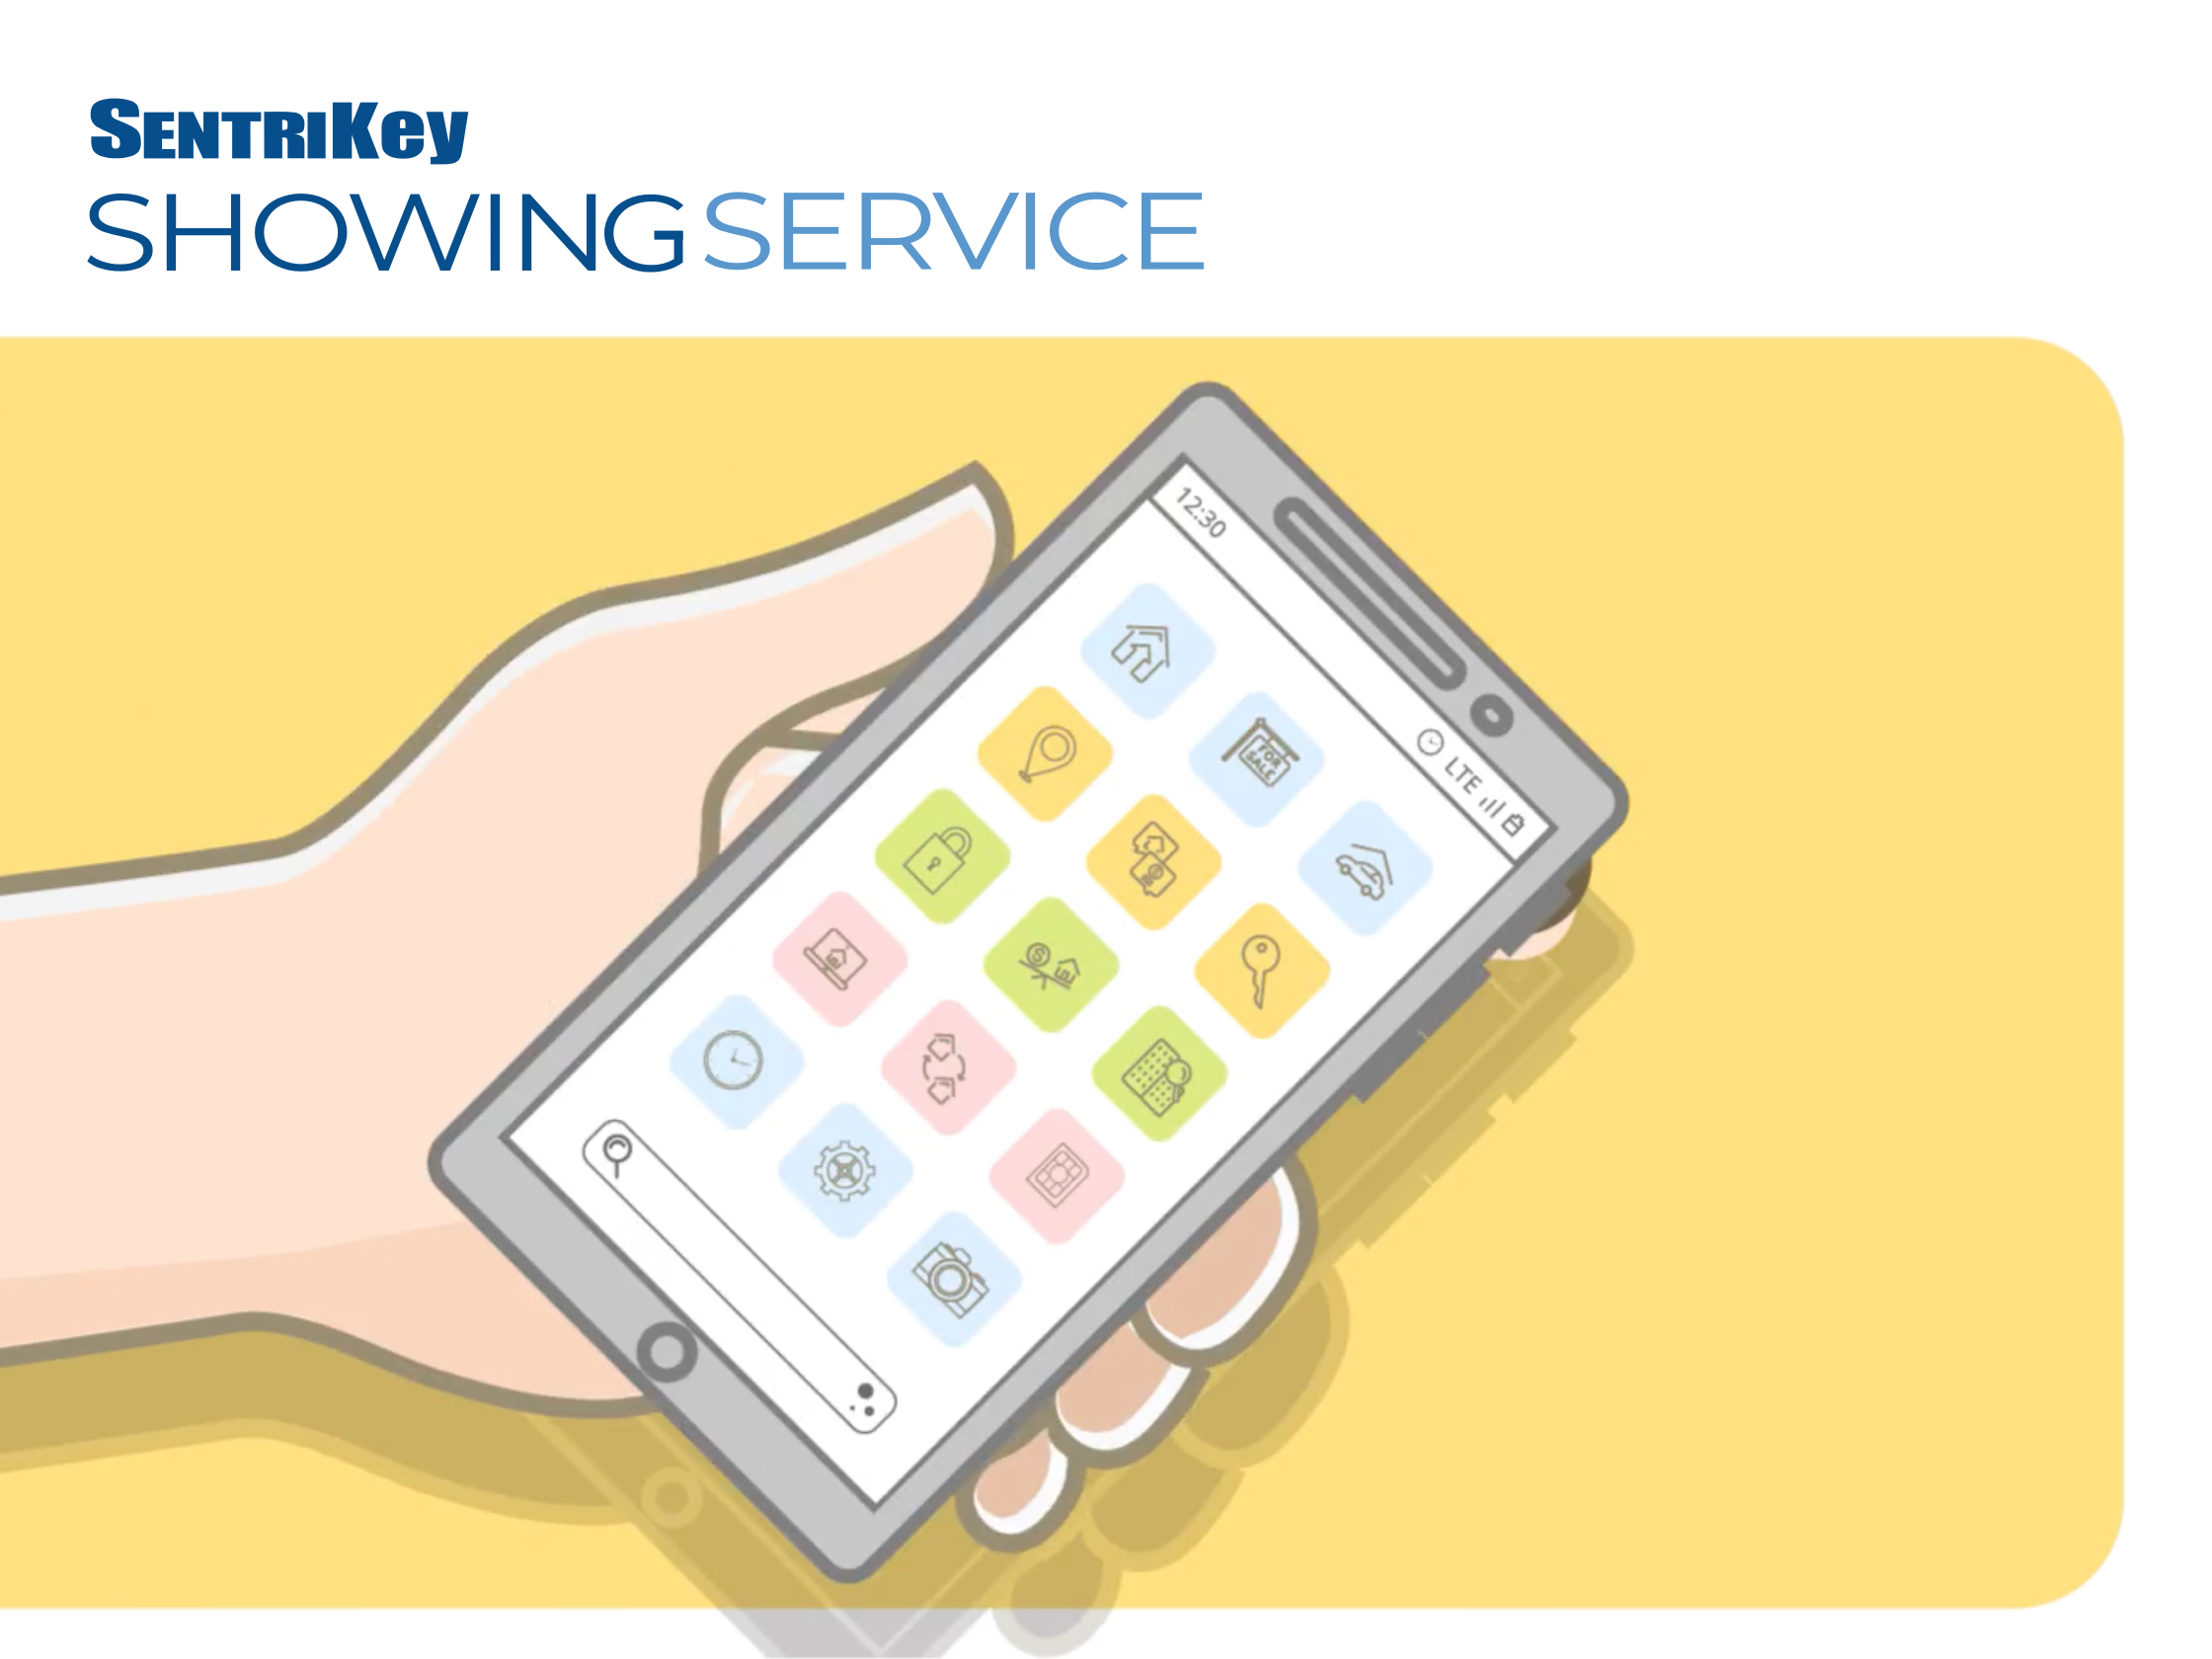 Sentrikey Showing service app illustration of a hand holding an iphone